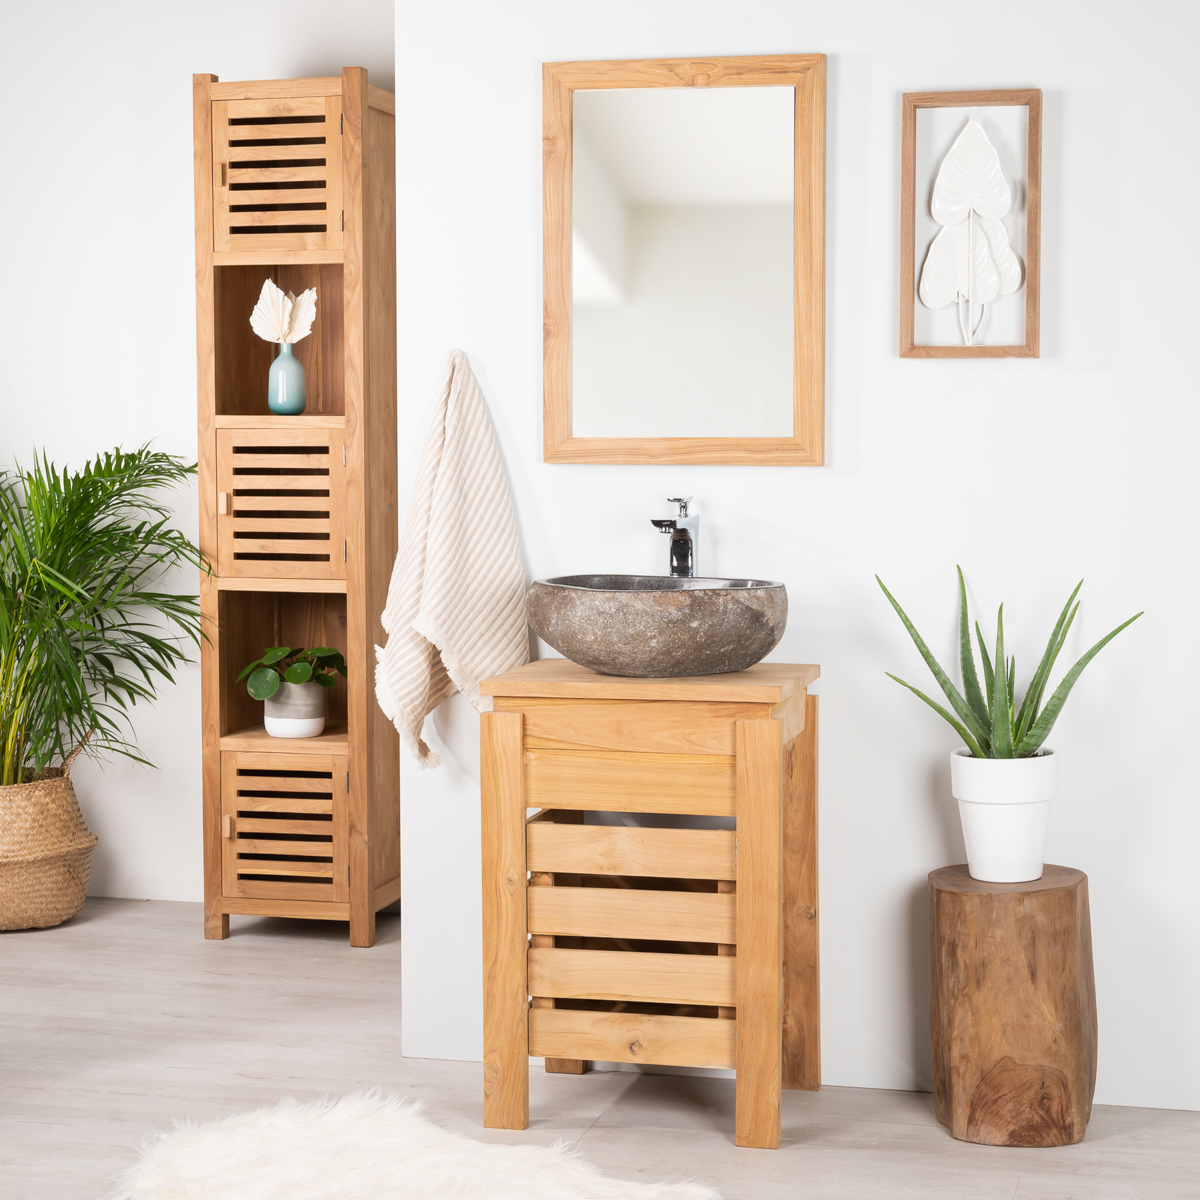 Meuble sous vasque simple vasque en bois teck massif zen rectangle naturel l 50 cm - Salle de bain rustique contemporain ...